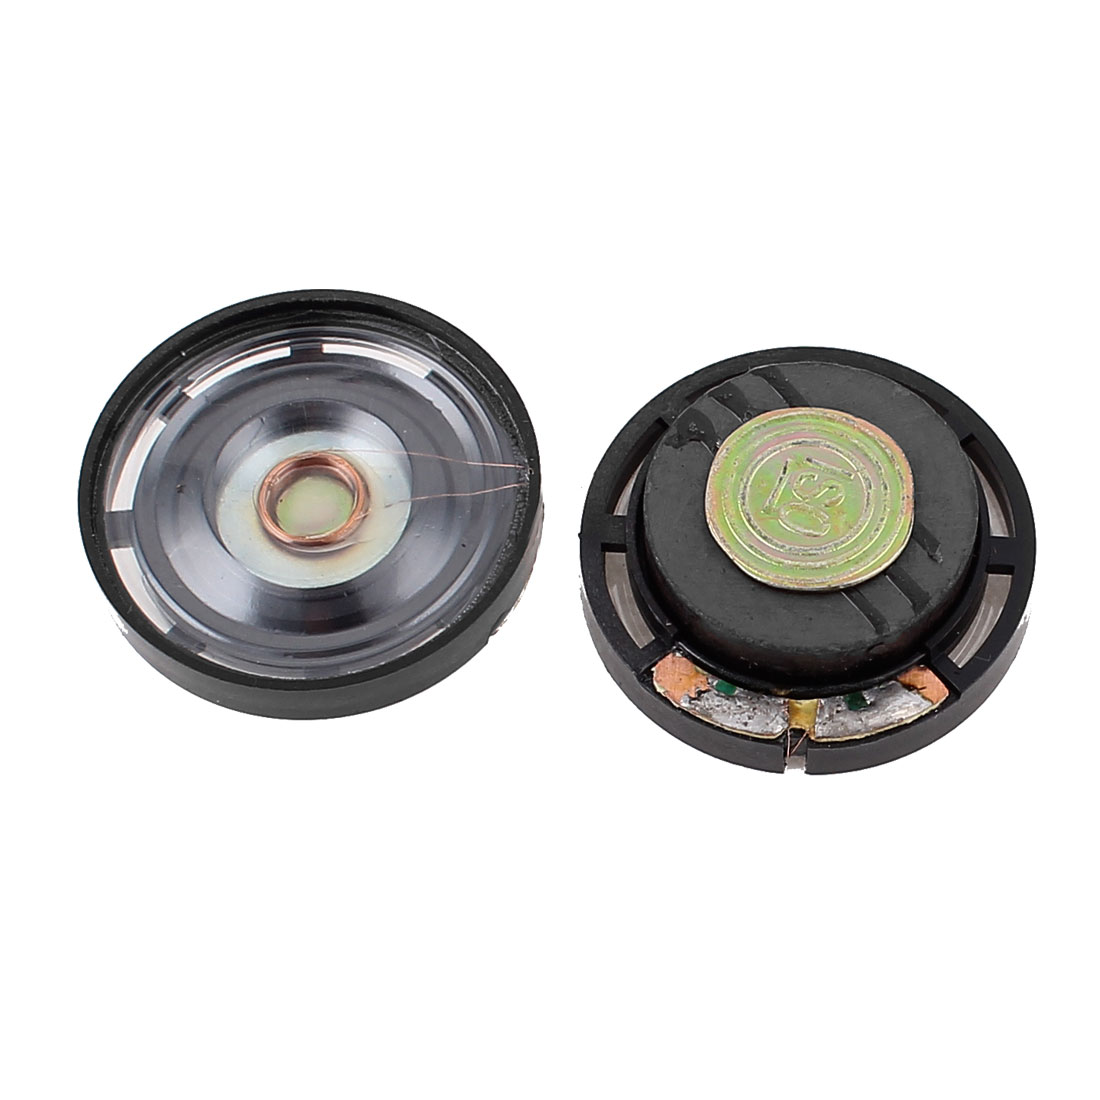 2 Pcs 1W 8 Ohm 29mm Round Outside Magnet Electronic Speaker Loudspeaker